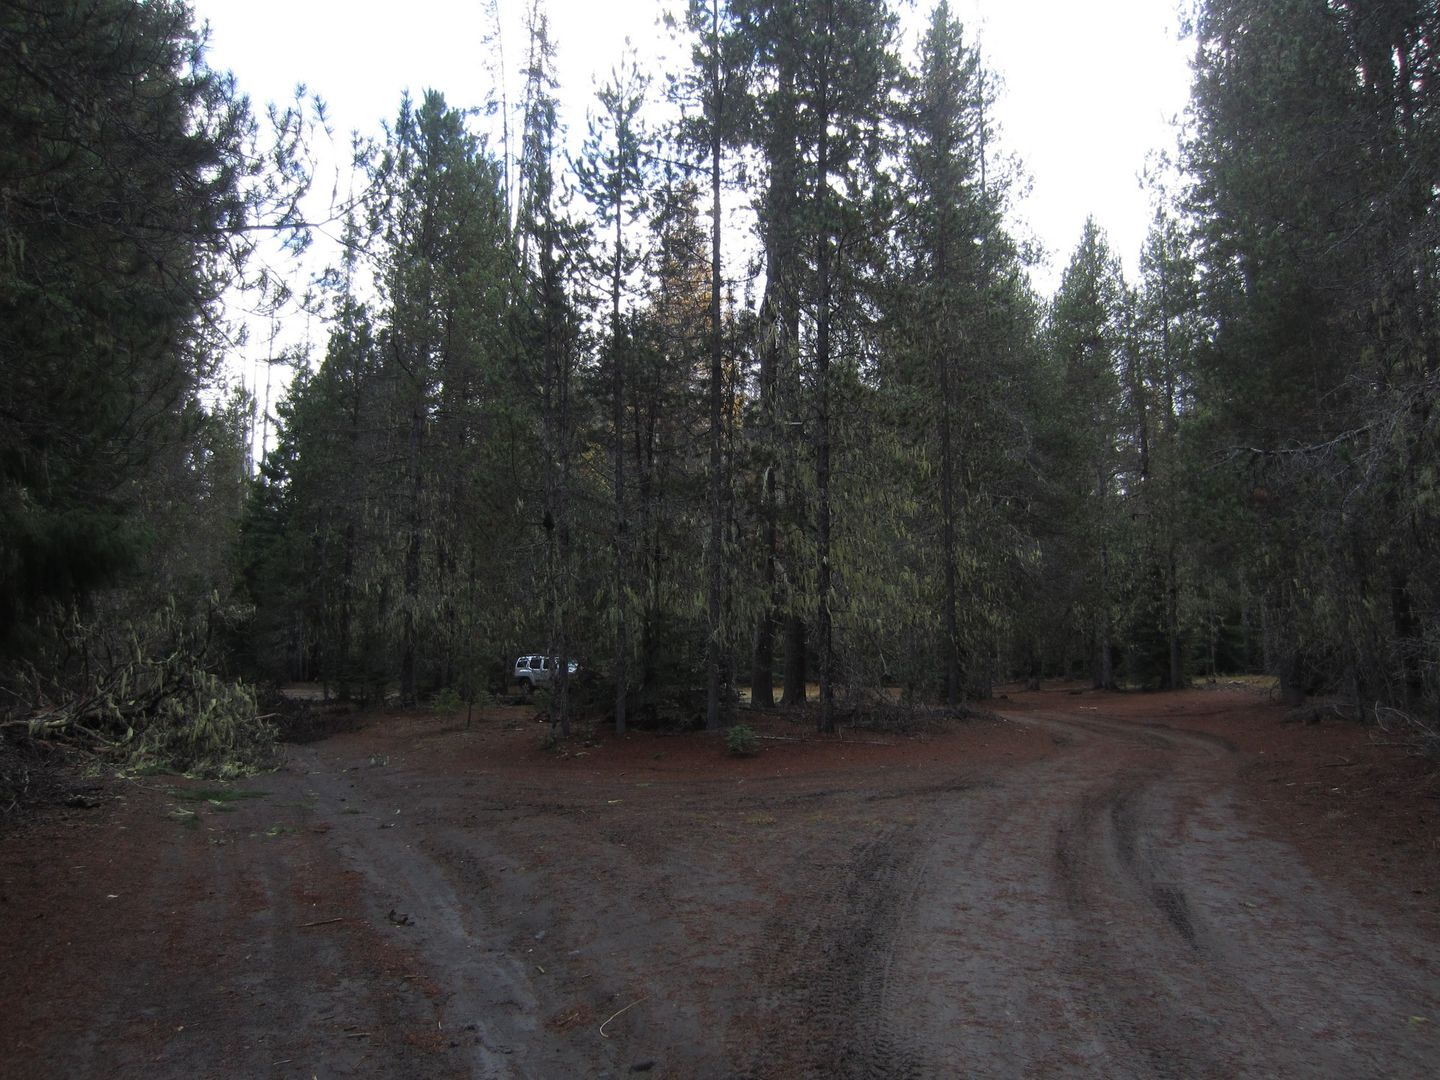 Barlow Trail - Waypoint 29: Continue Straight